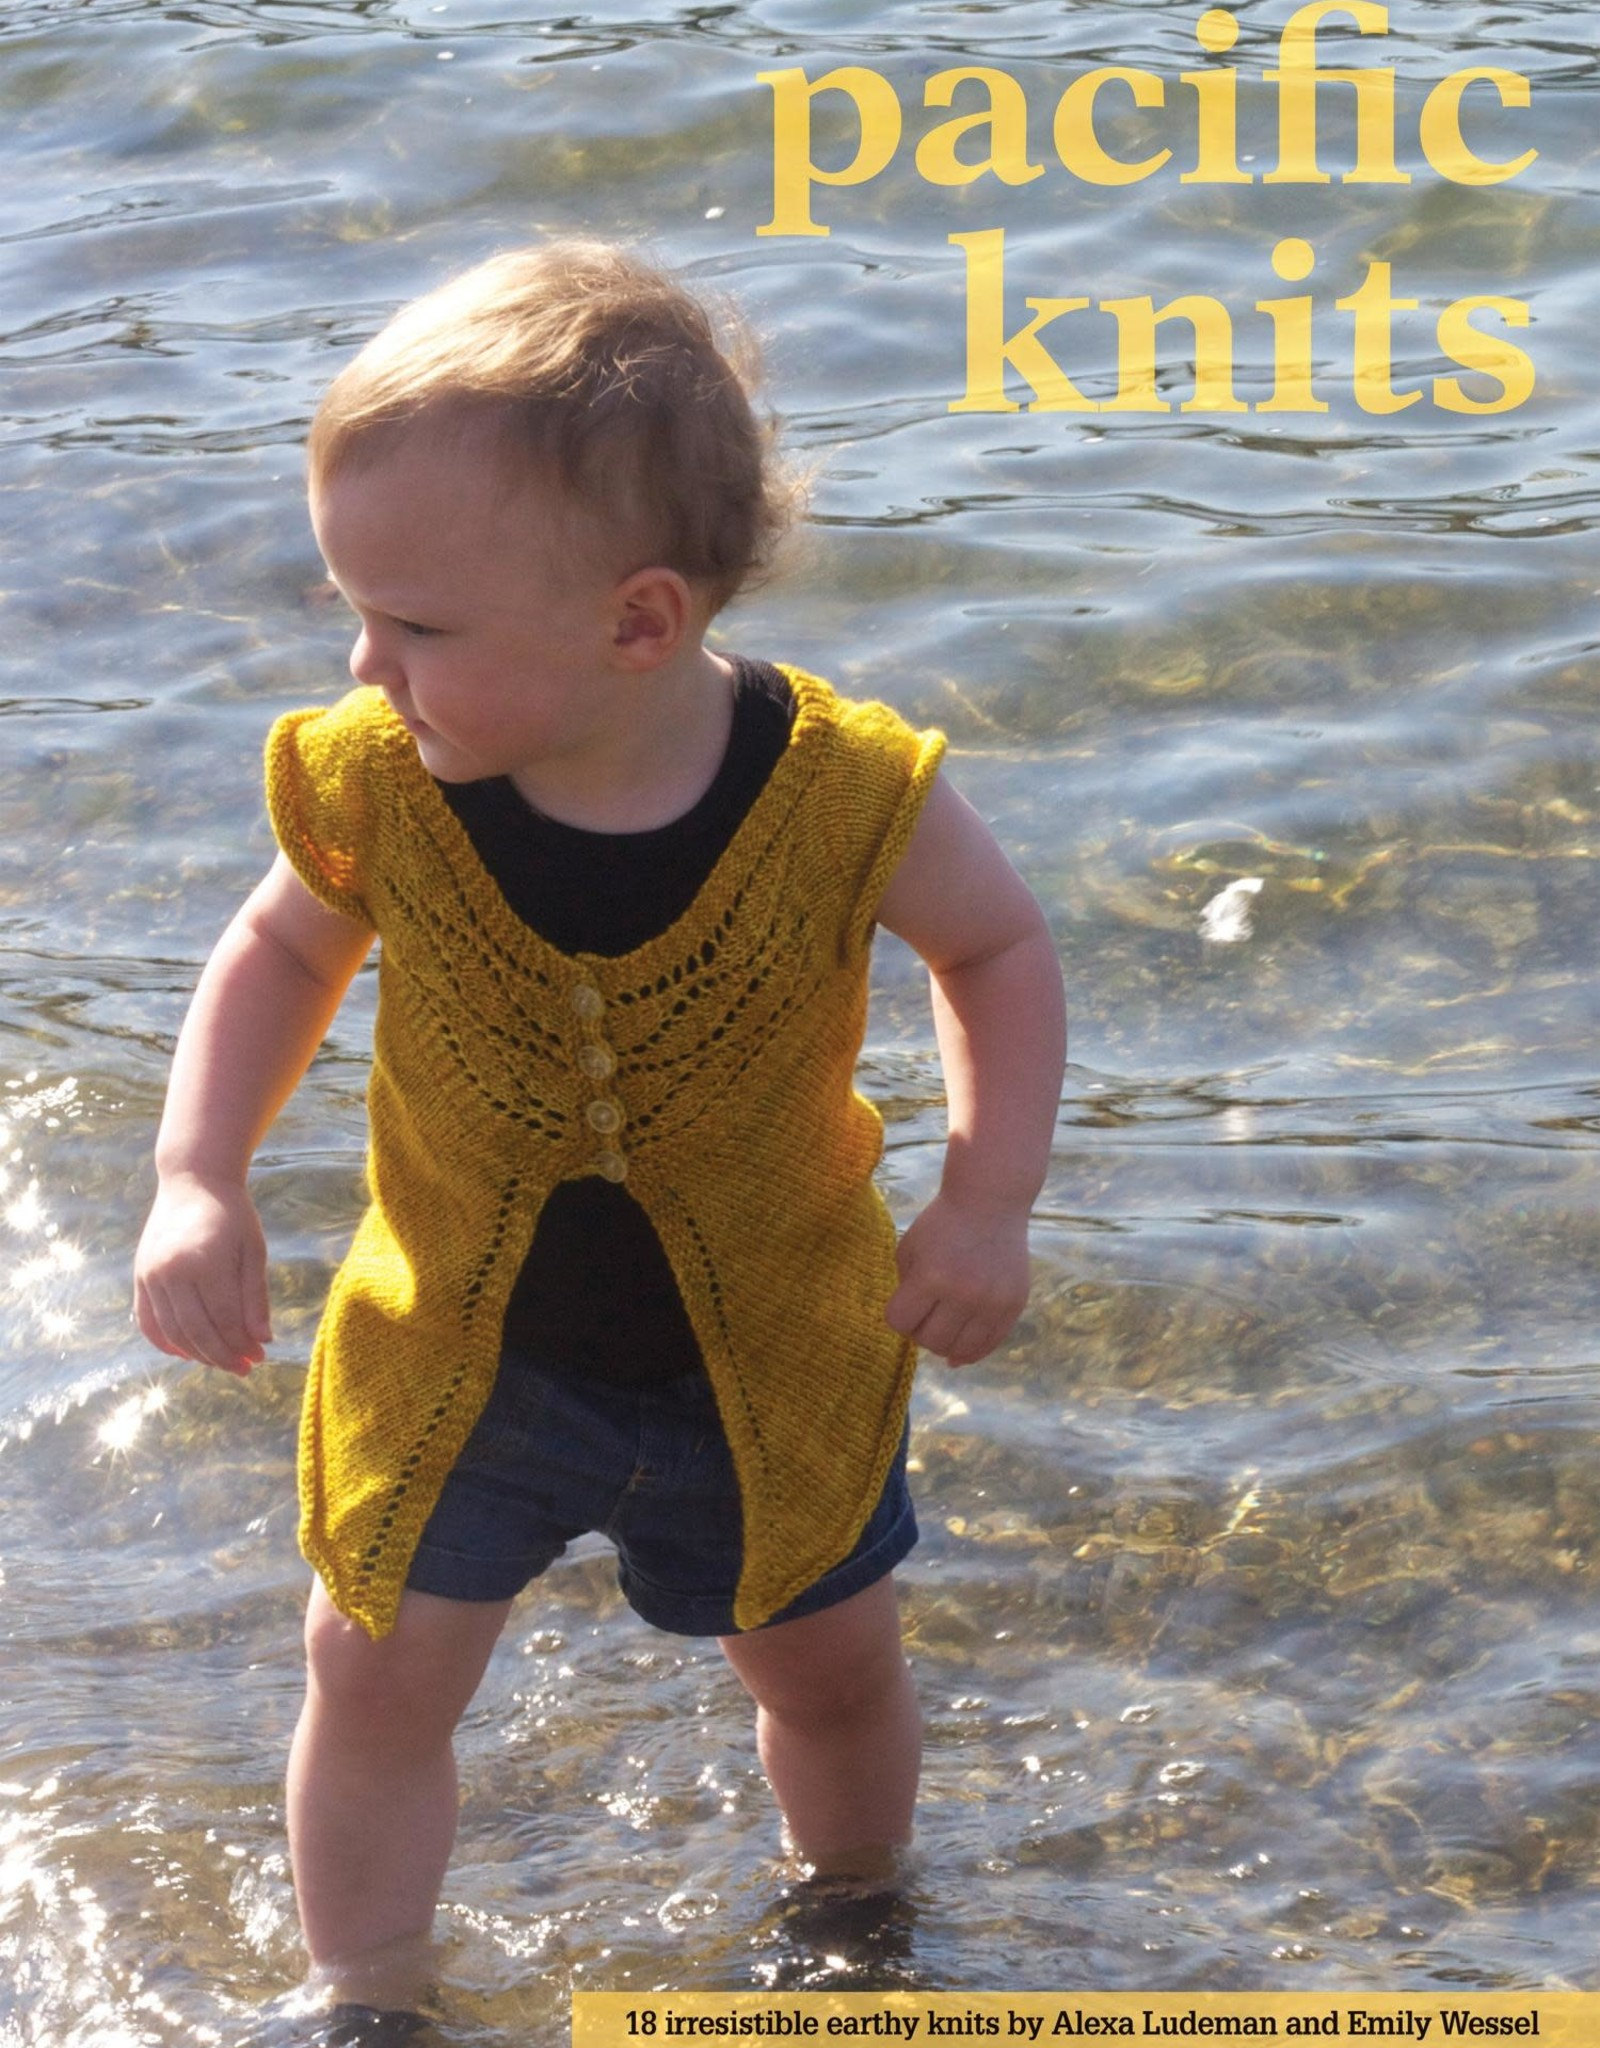 Book - Pacific Knits by tincanknits